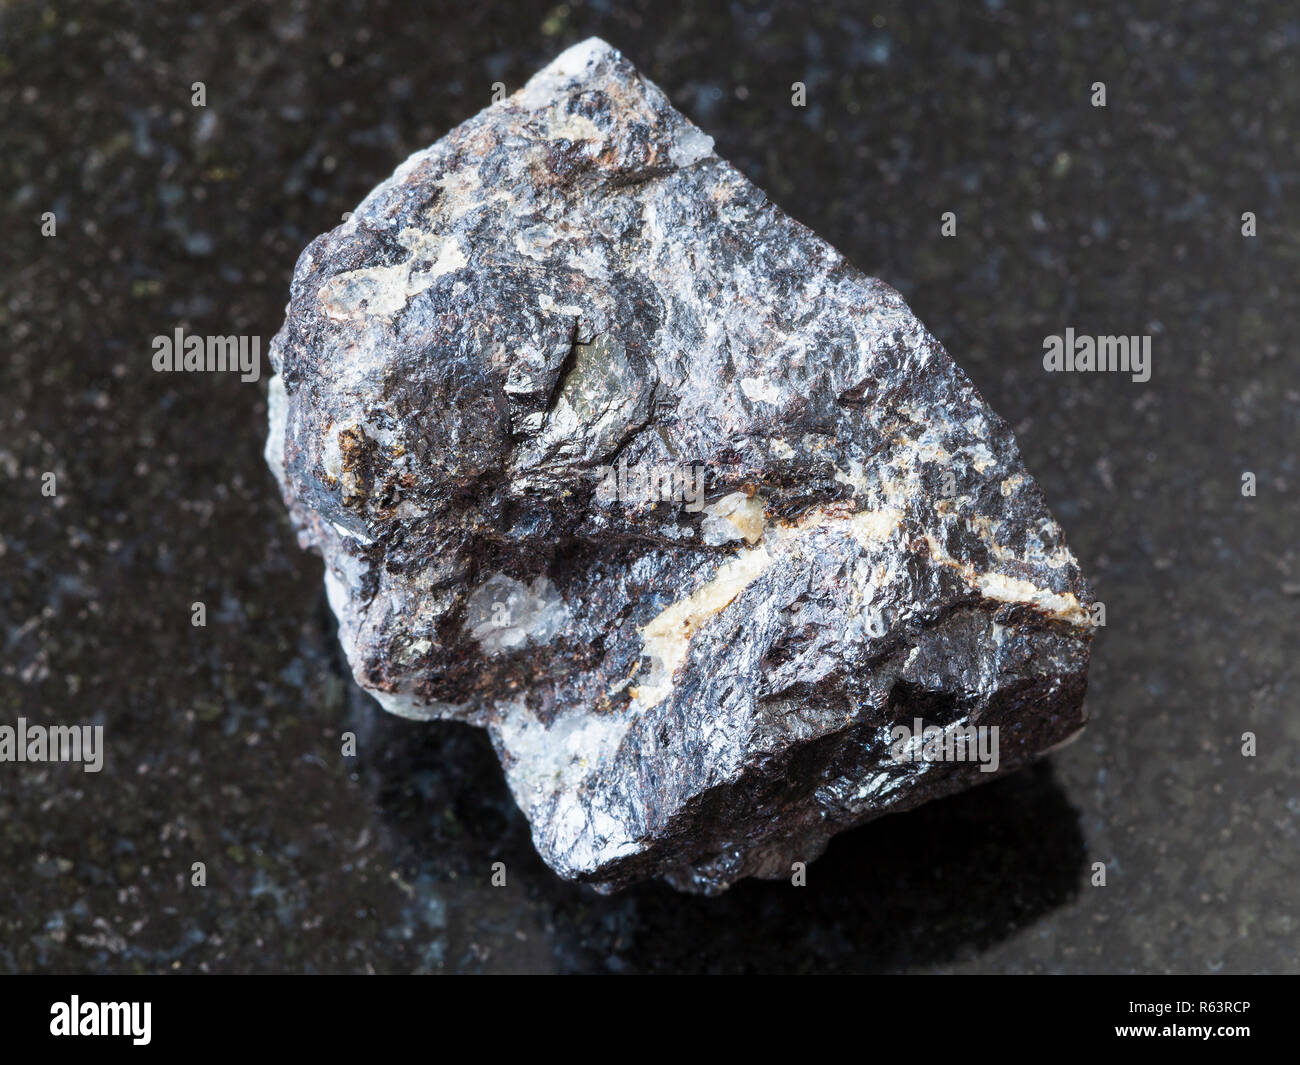 Sphalerite ore on dark background - Stock Image